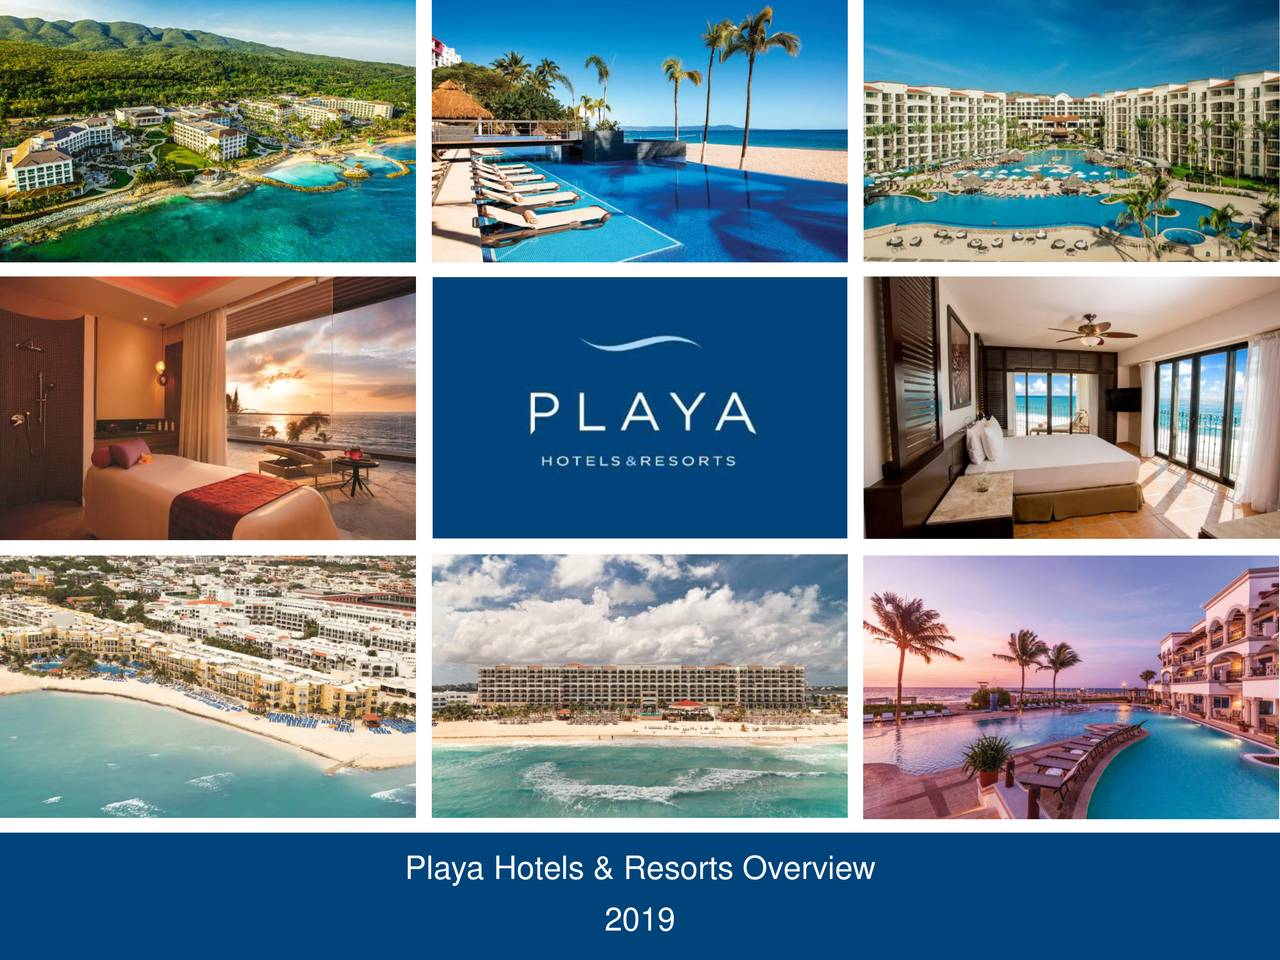 Playa Hotels & Resorts Overview